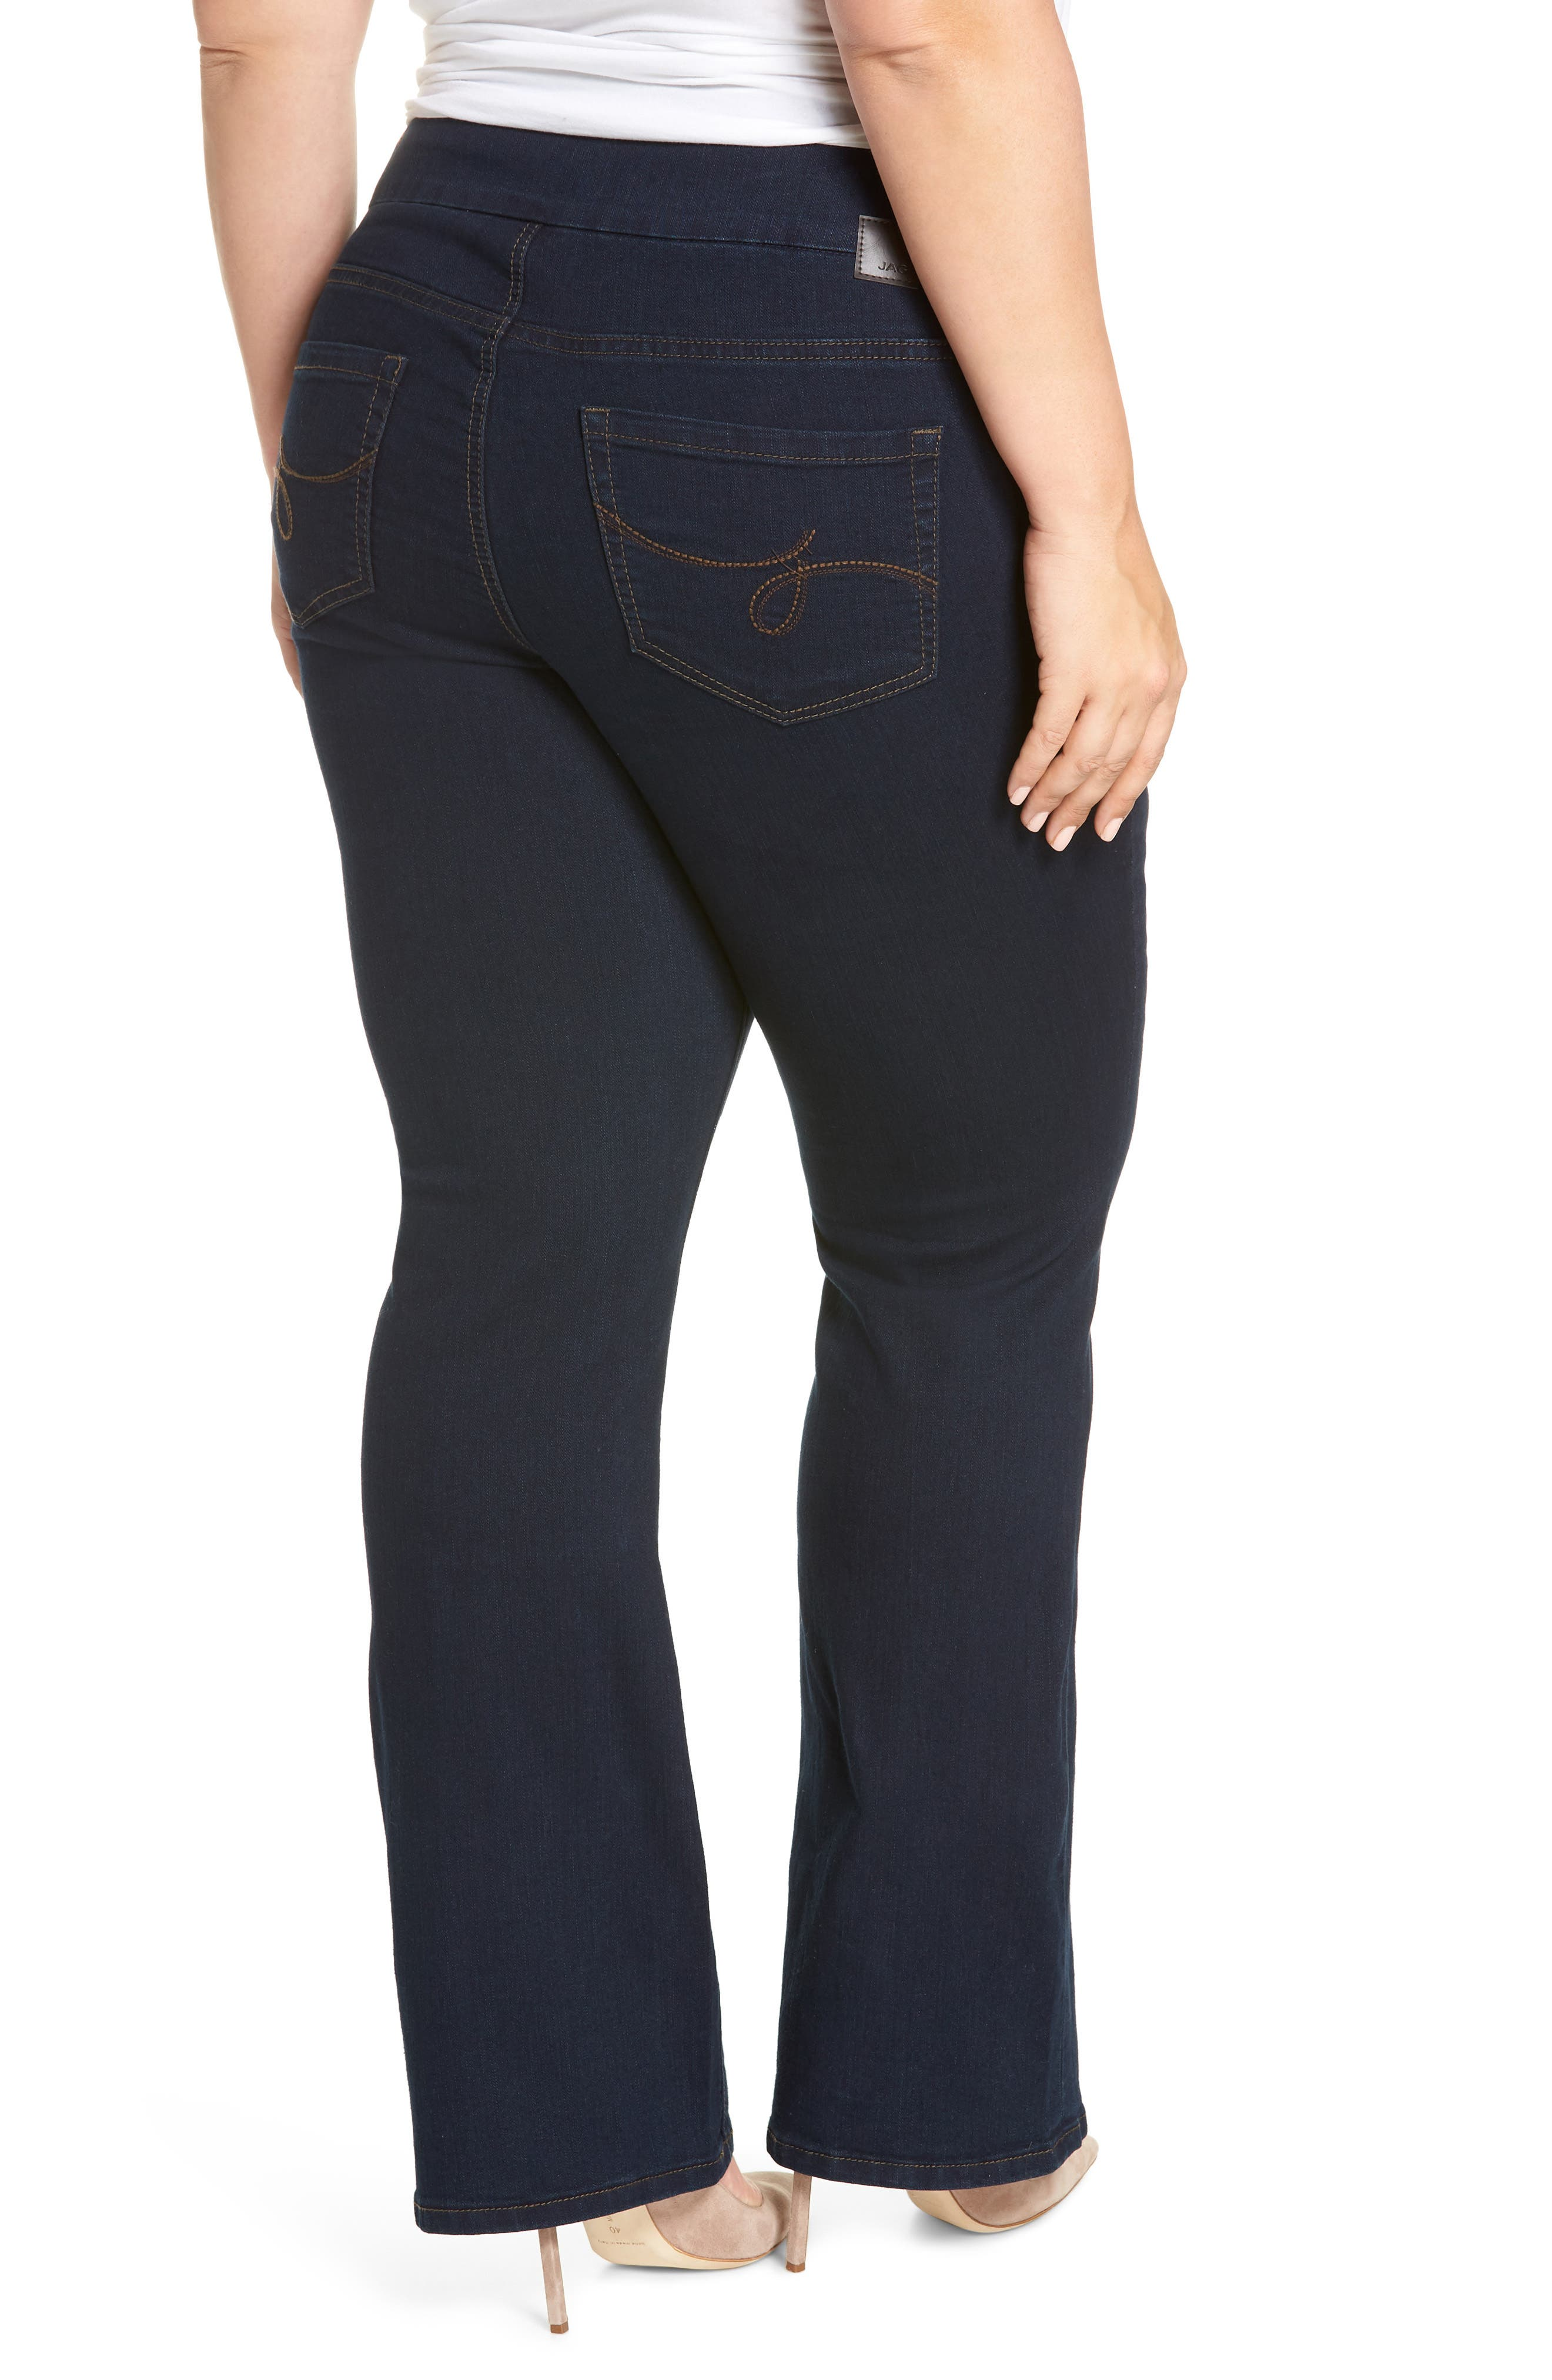 Peri Stretch Straight Leg Jeans,                             Alternate thumbnail 2, color,                             Dark Indigo